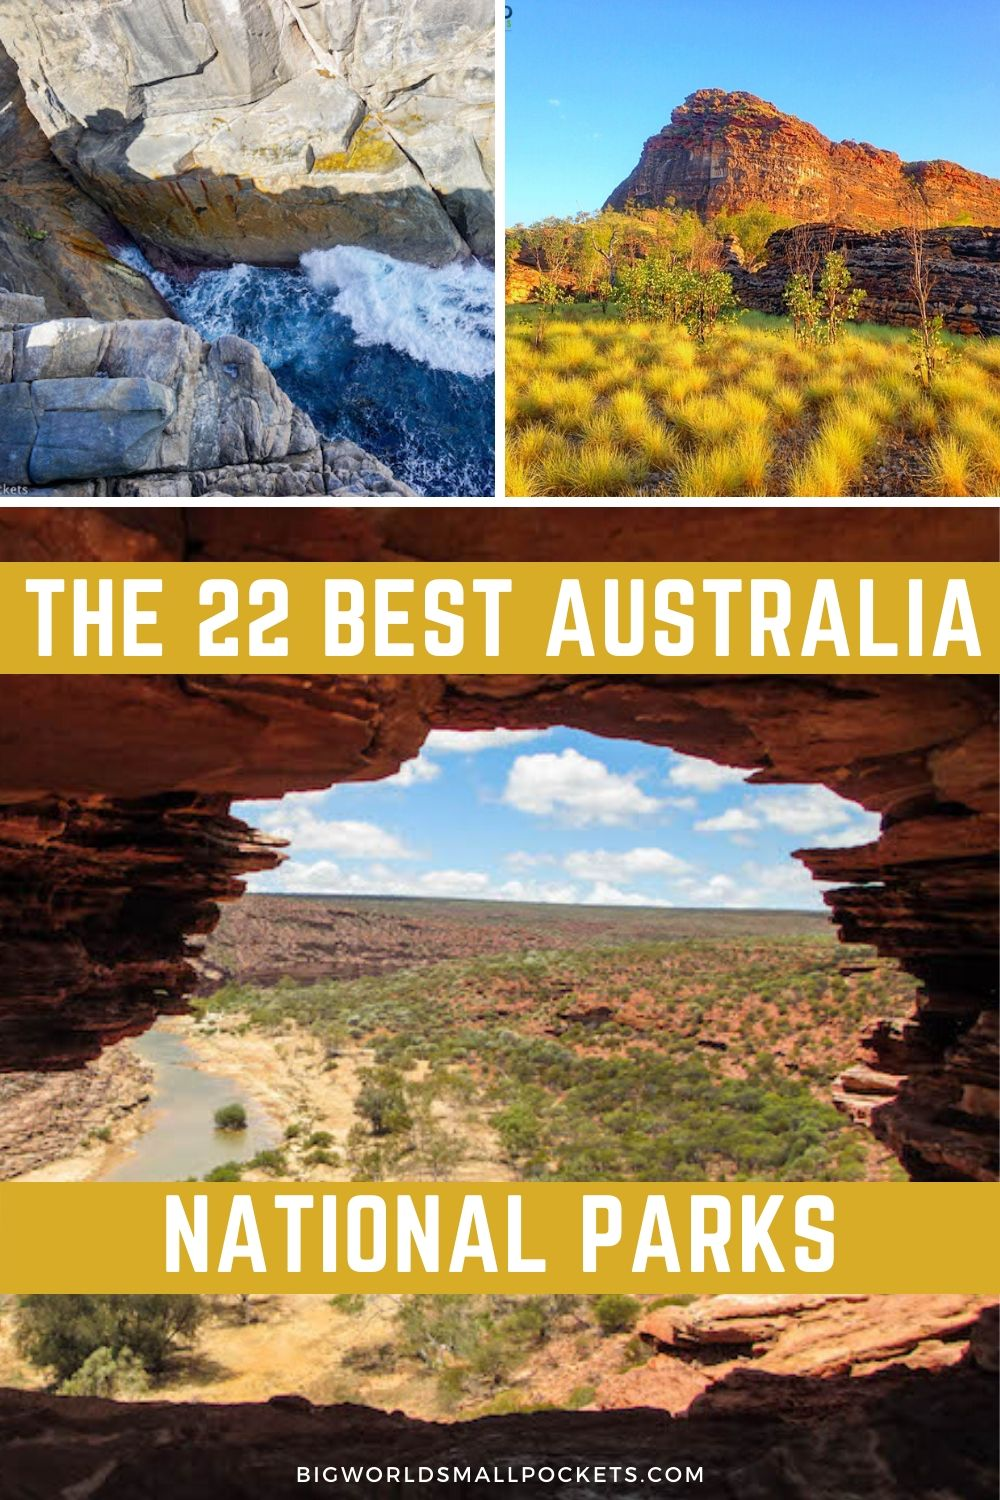 The 22 Top Australian National Parks